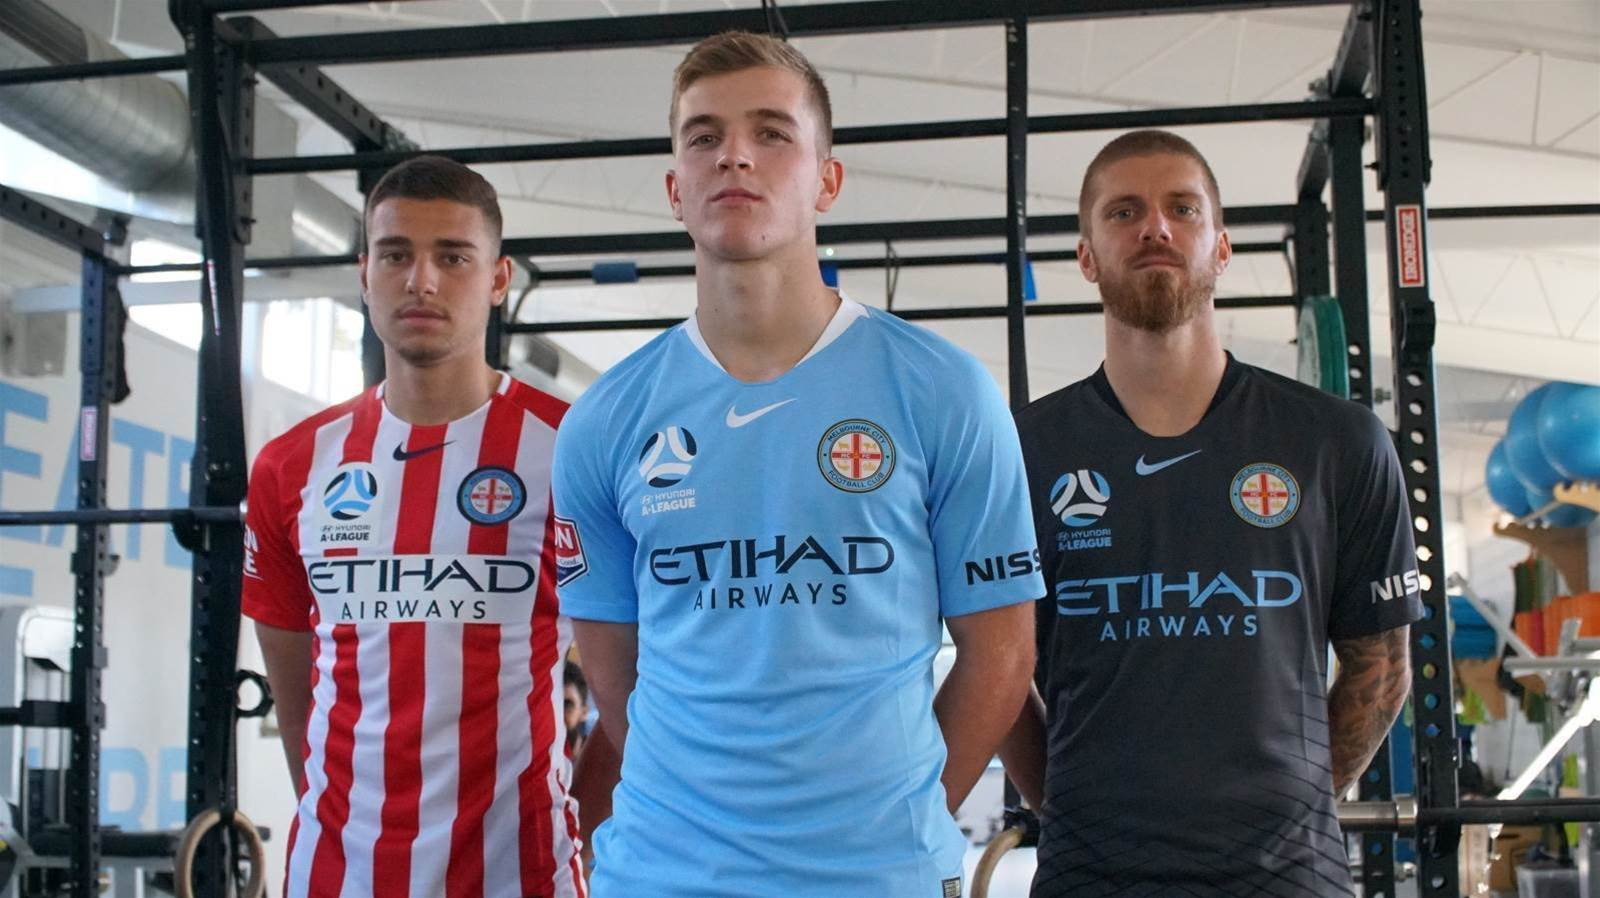 Revealed! Melbourne City's new kit - pic special